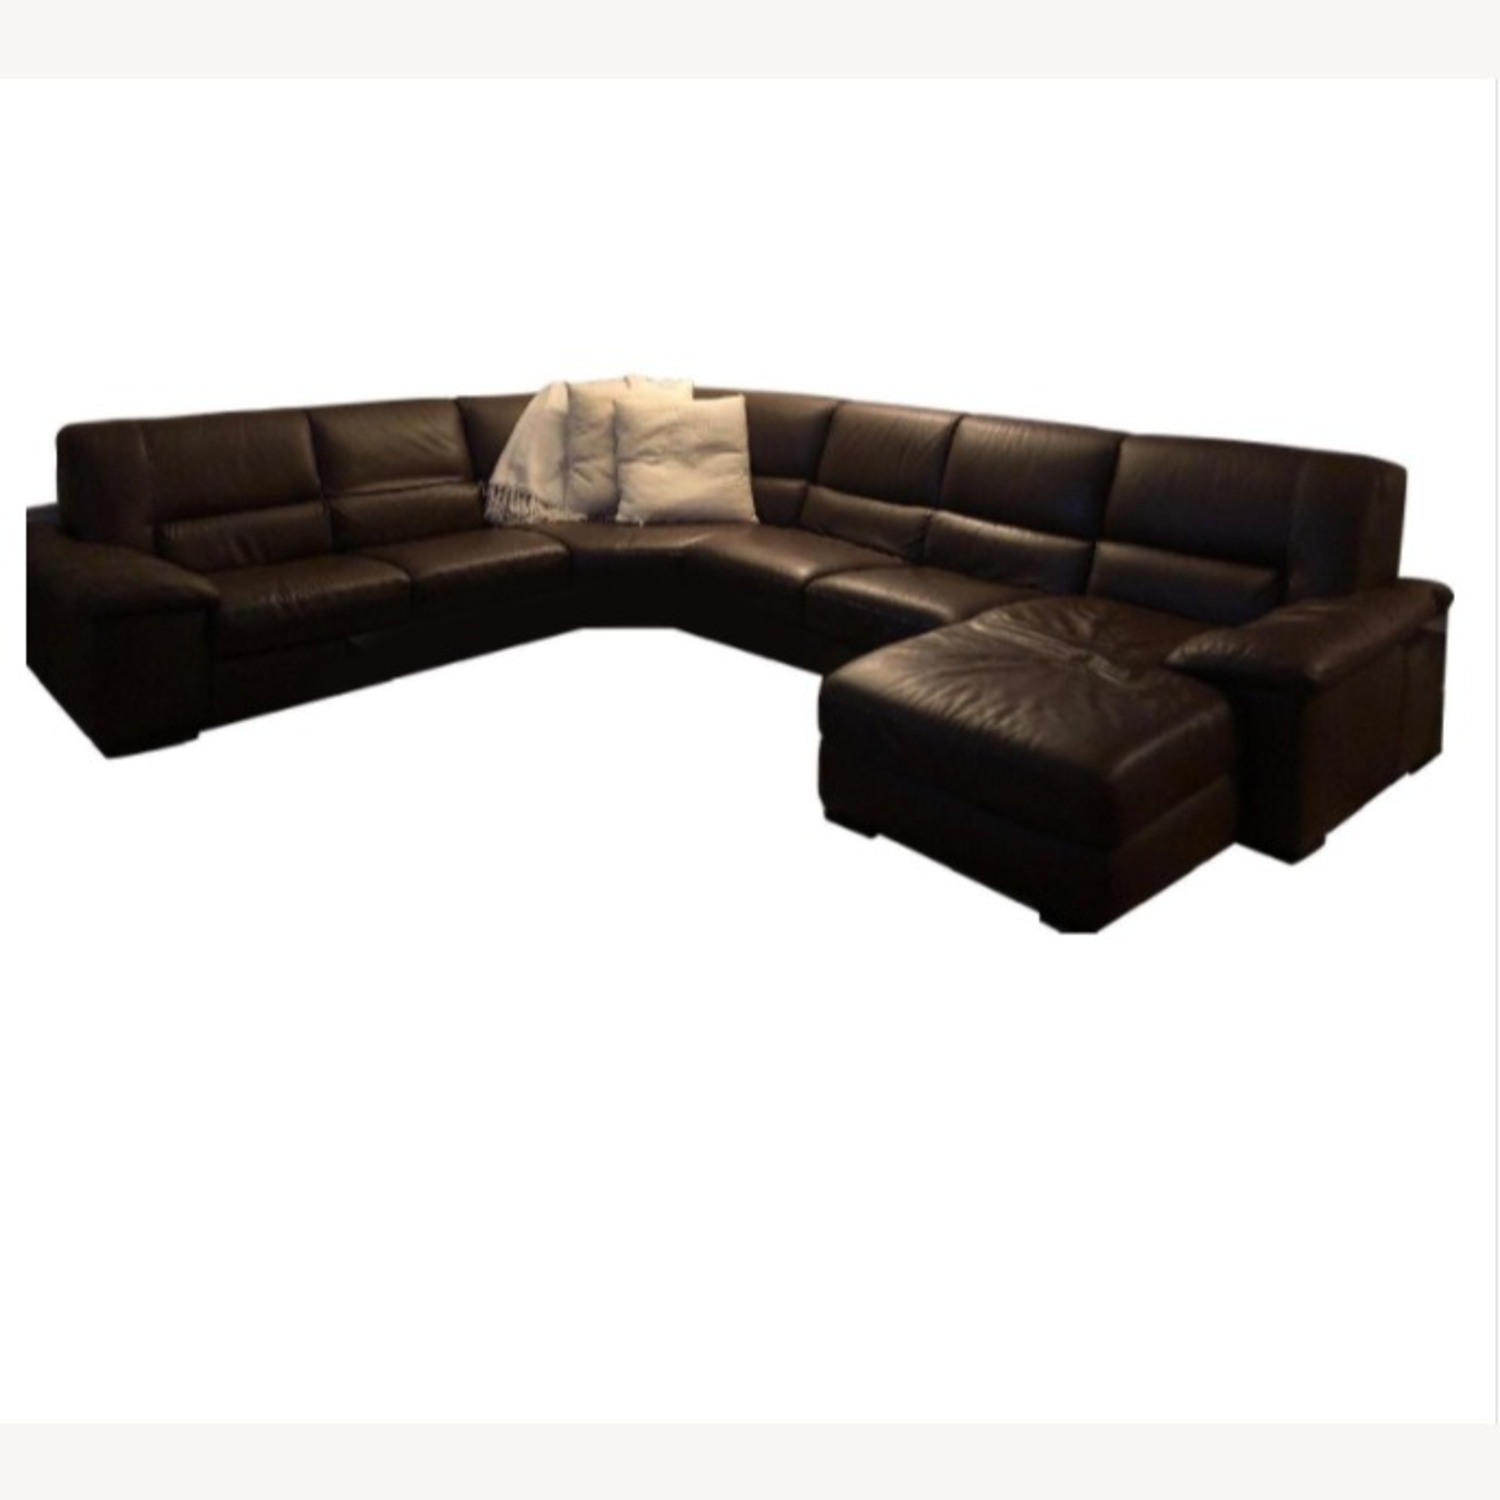 Macy's Brown Leather Sectional - image-1